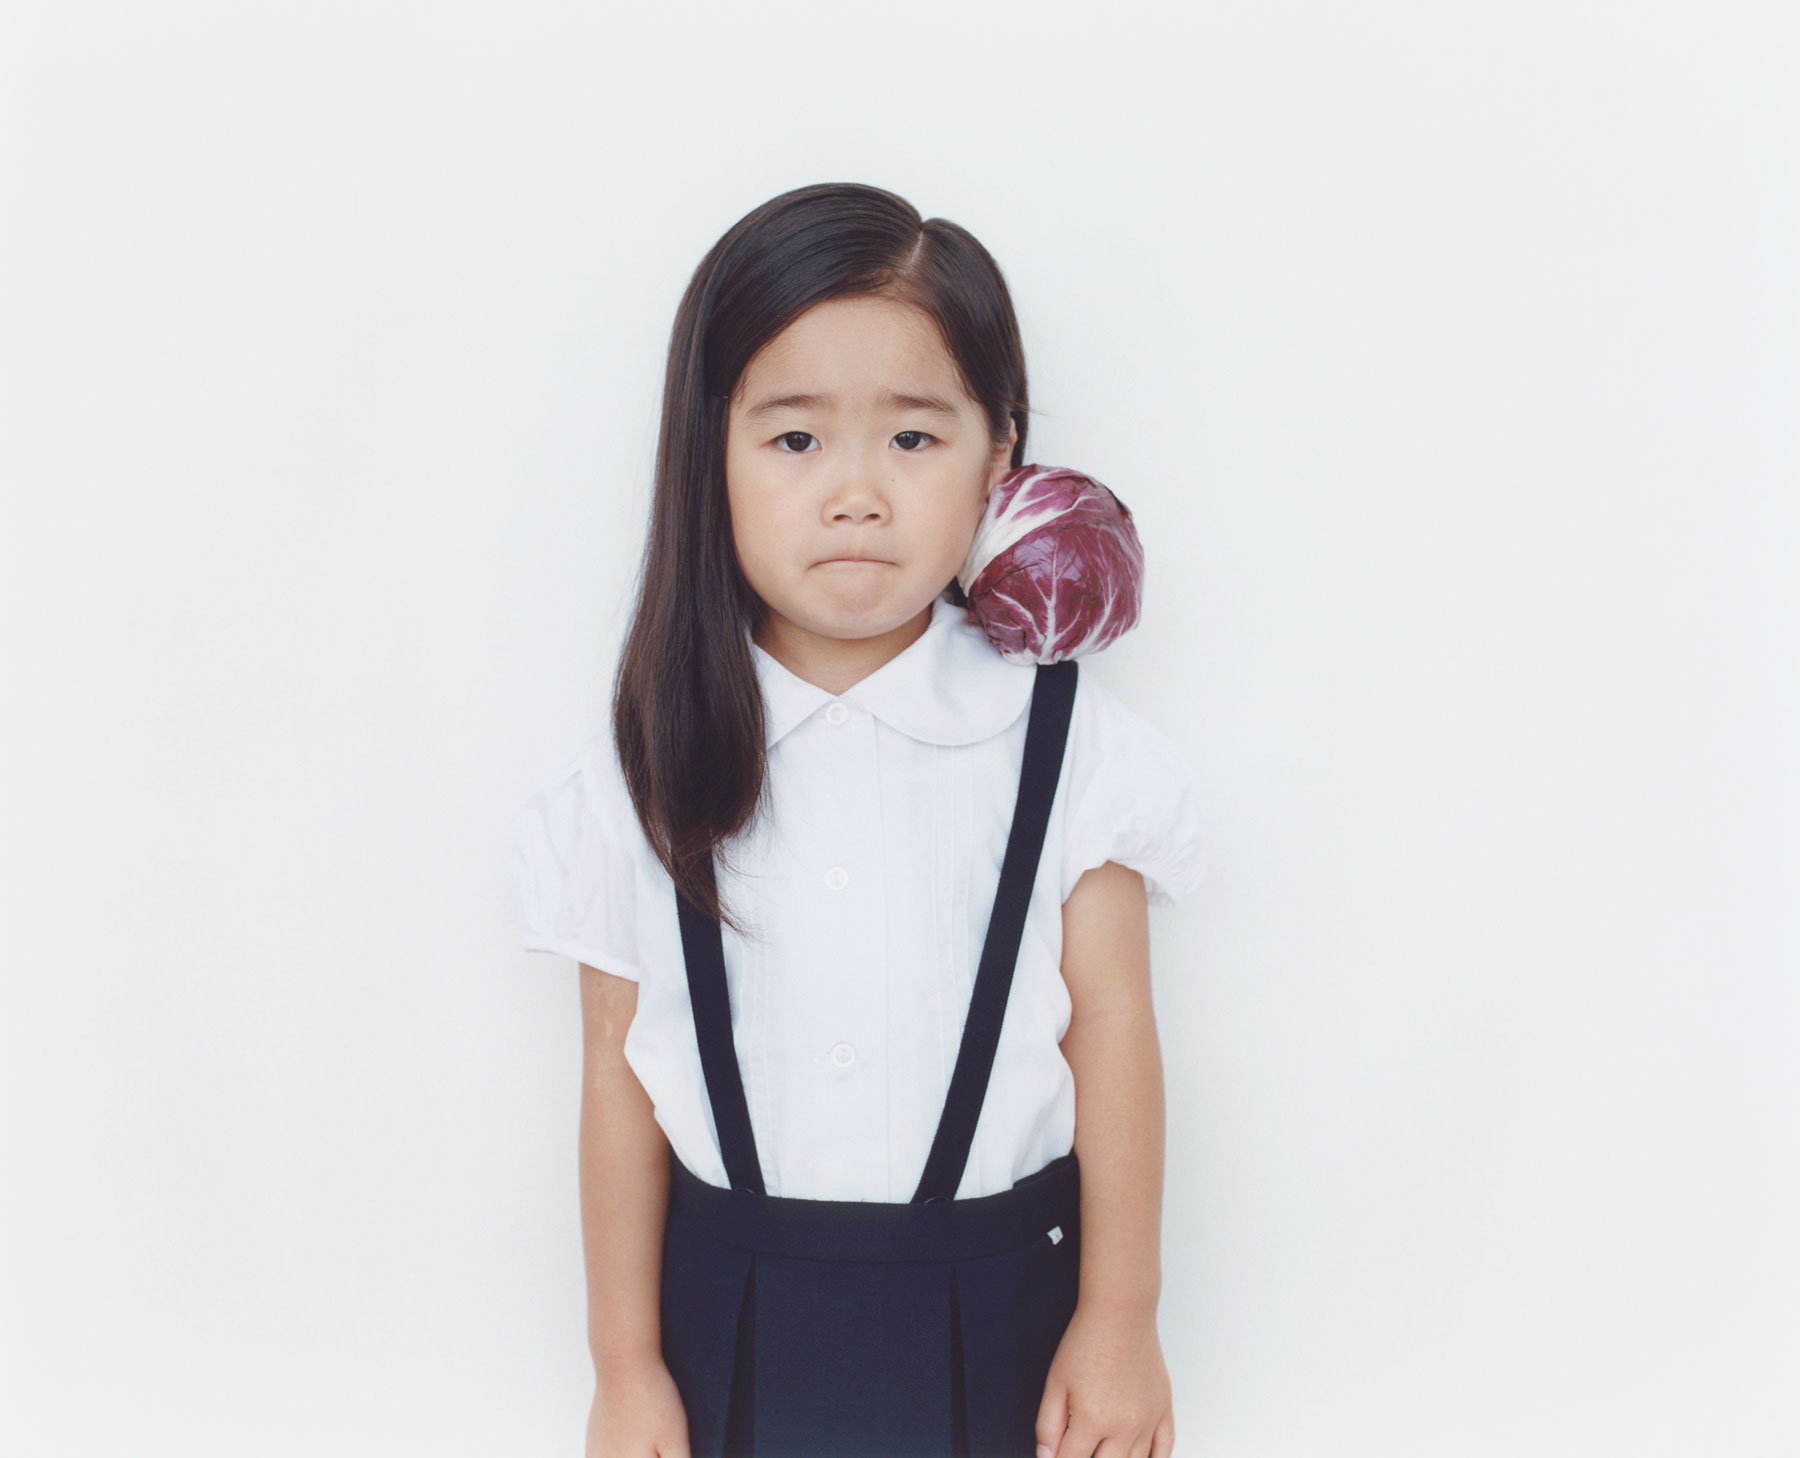 Osamu Yokonami,  1000 Children: Purple Cabbage No. 80 , 2010-2013  Digital pigment print, 895 x 1105 mm (approx. 35 x 43.5 in), edition of 5; 146 x 168 mm (approx. 5.75 x 6.6 in), edition of 10   Inquire